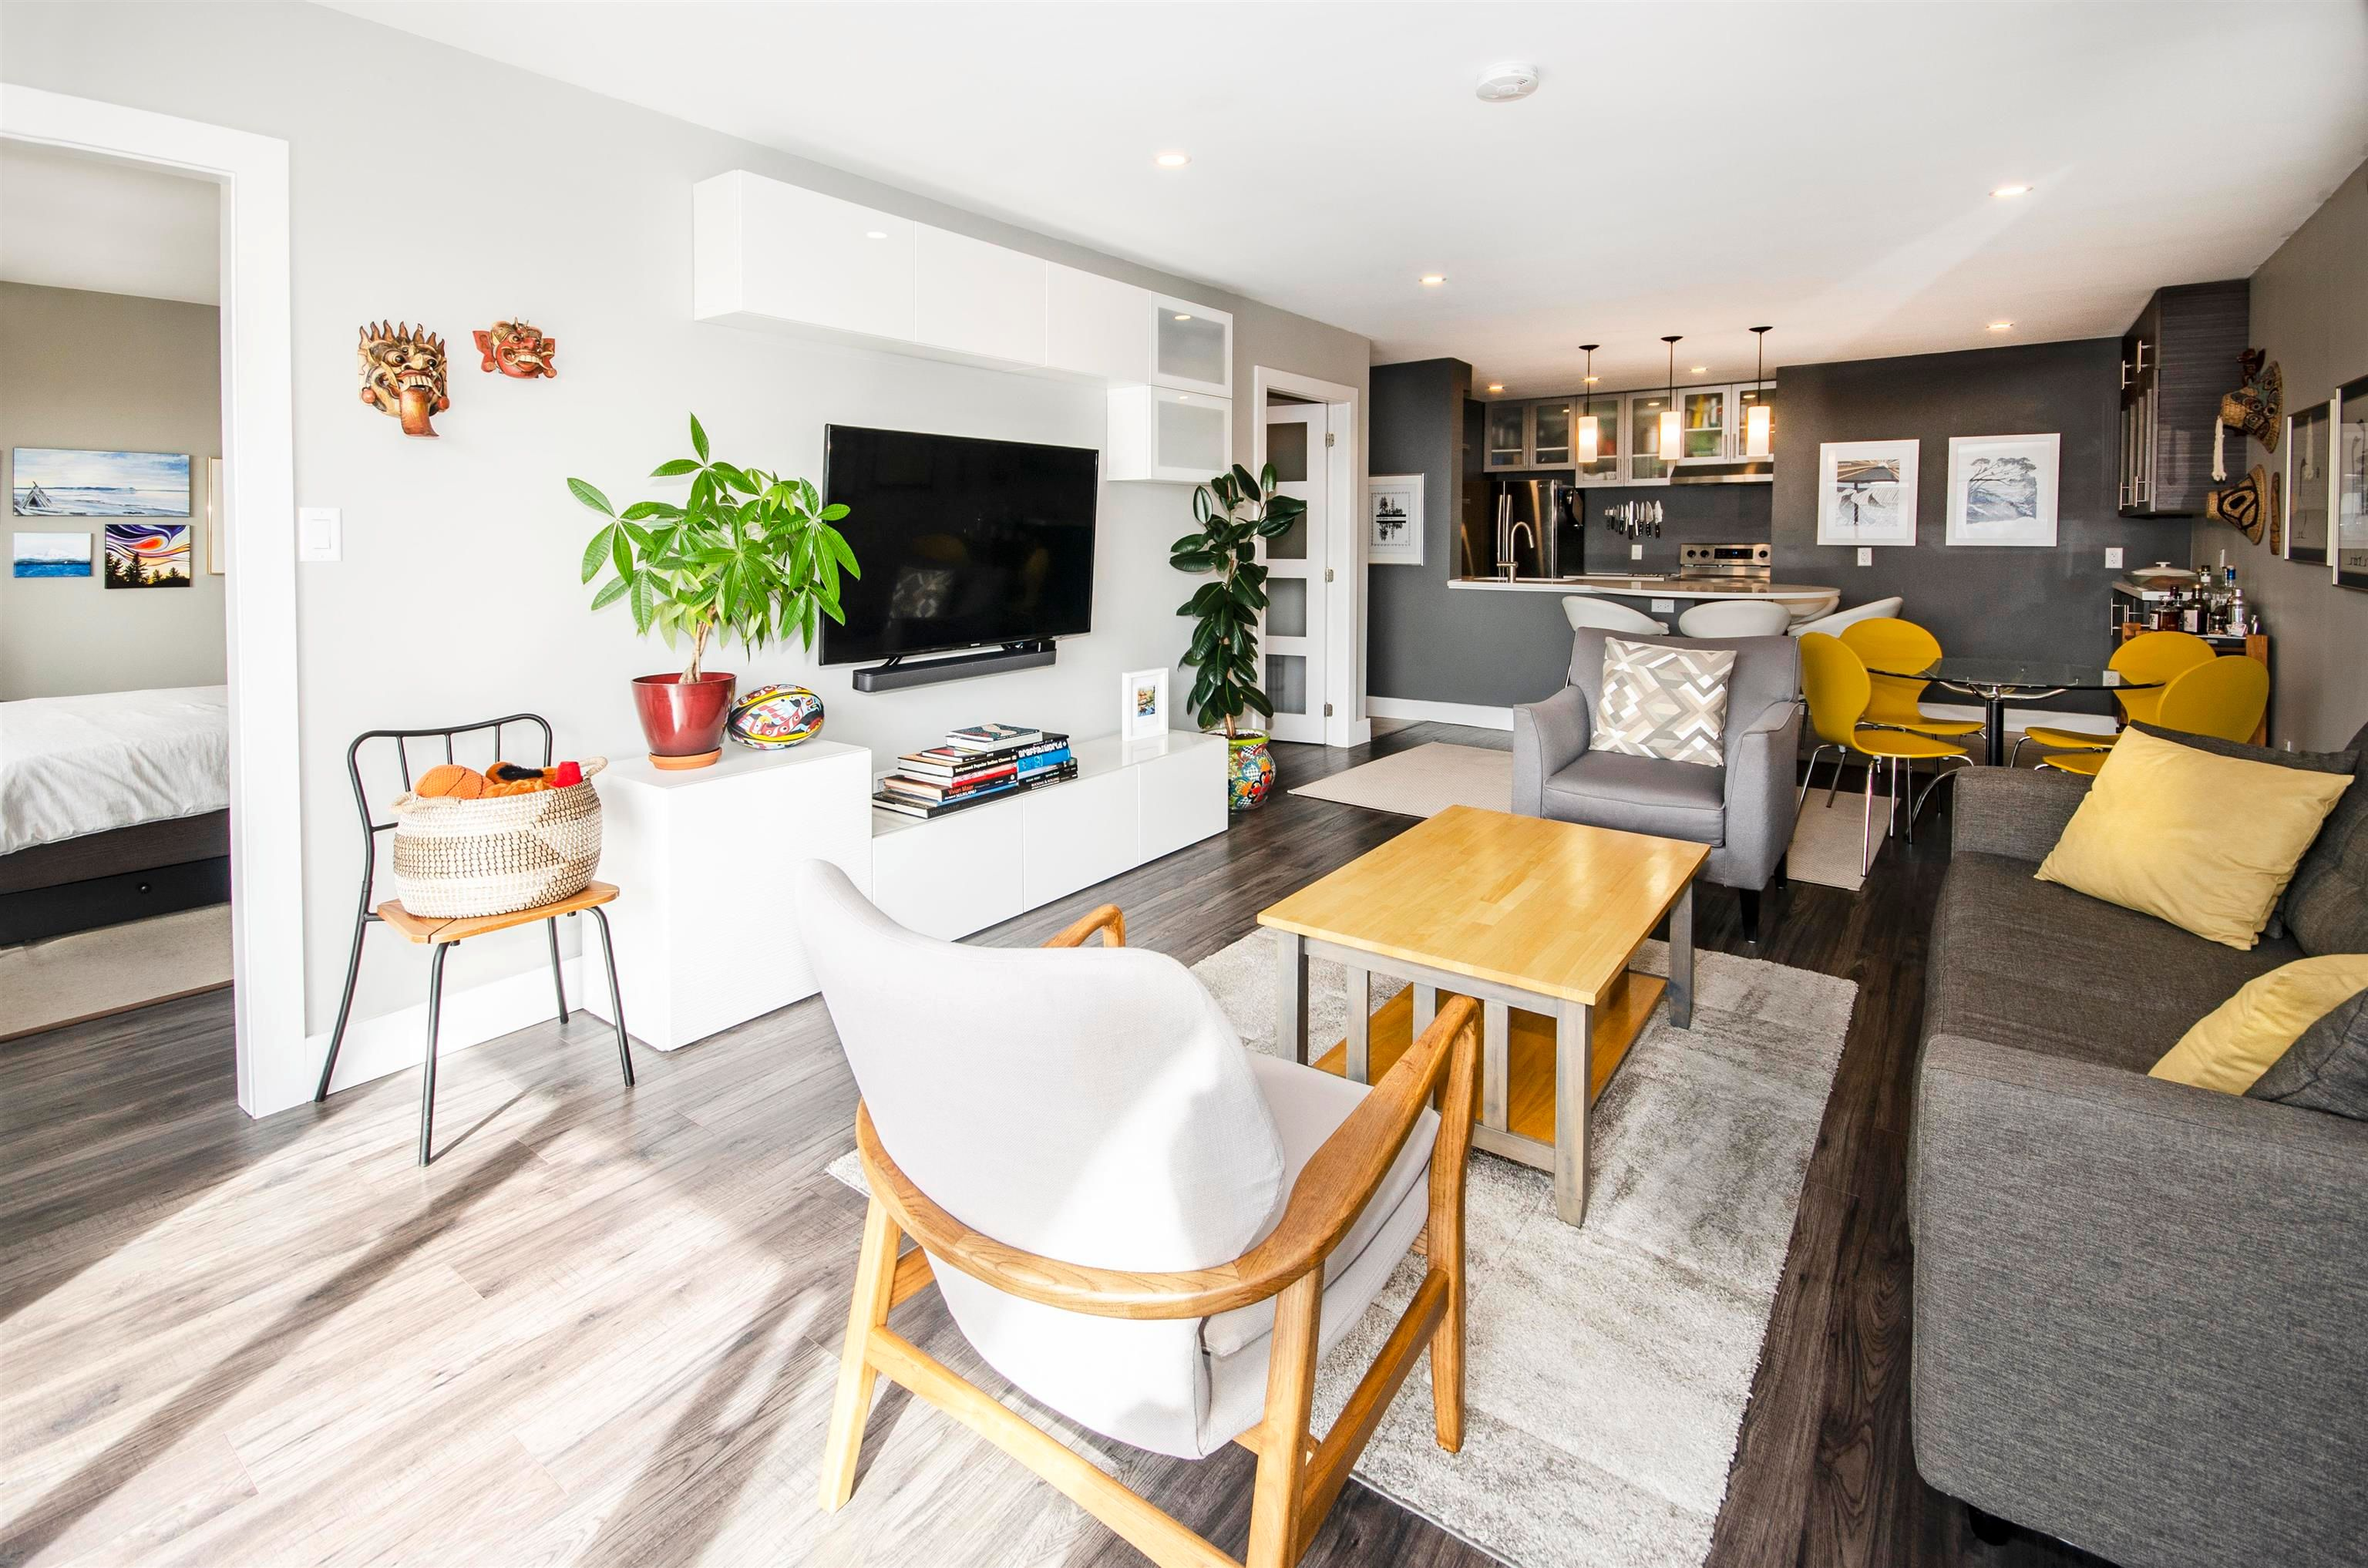 """Main Photo: 206 175 E 5TH Street in North Vancouver: Lower Lonsdale Condo for sale in """"Wellington Manor"""" : MLS®# R2624759"""